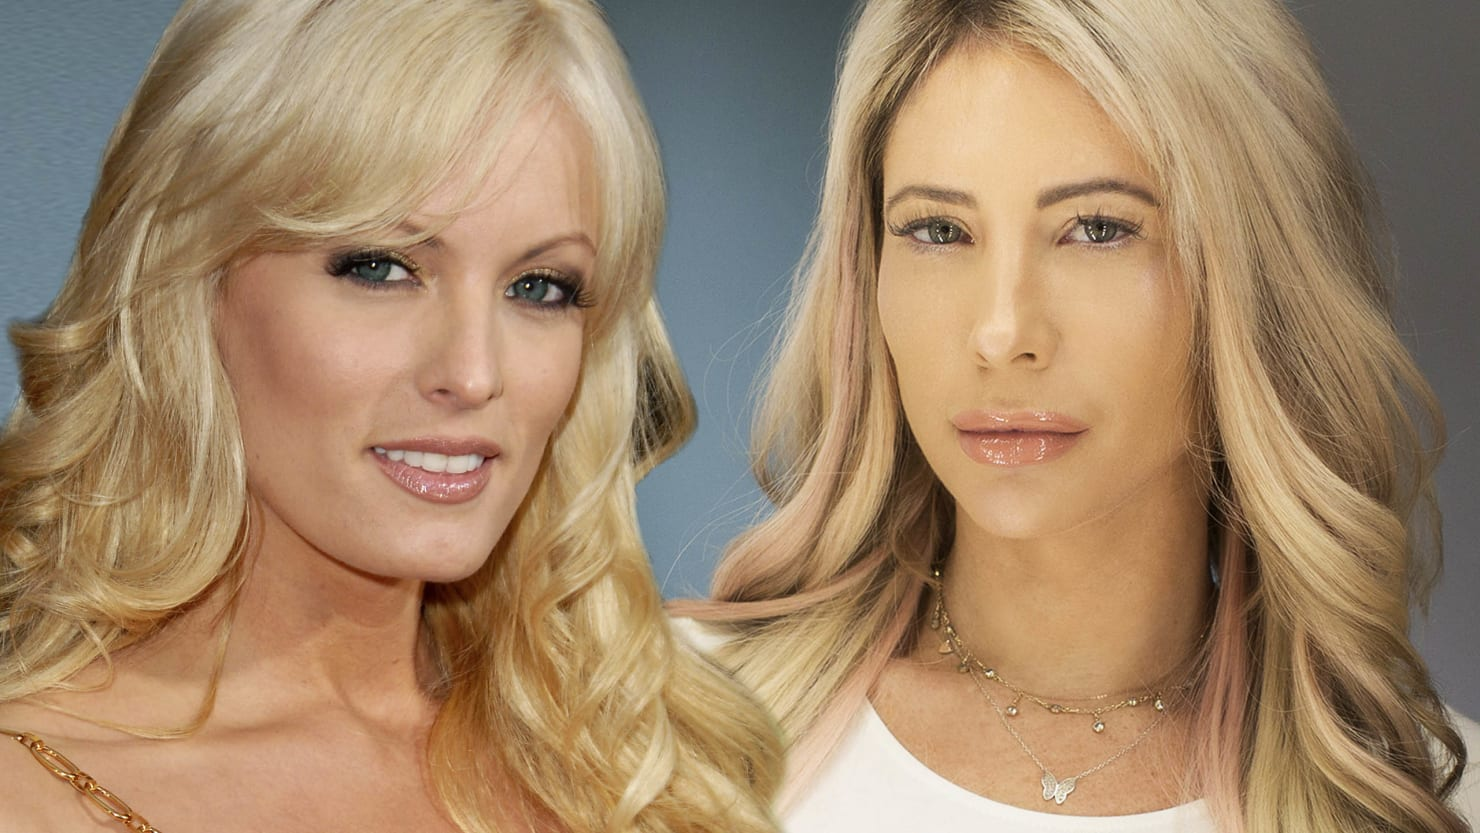 Memeorandum Tasha Reign I Was Assaulted On A Stormy Daniels Porn Set And She Did Nothing Marlow Stern The Daily Beast